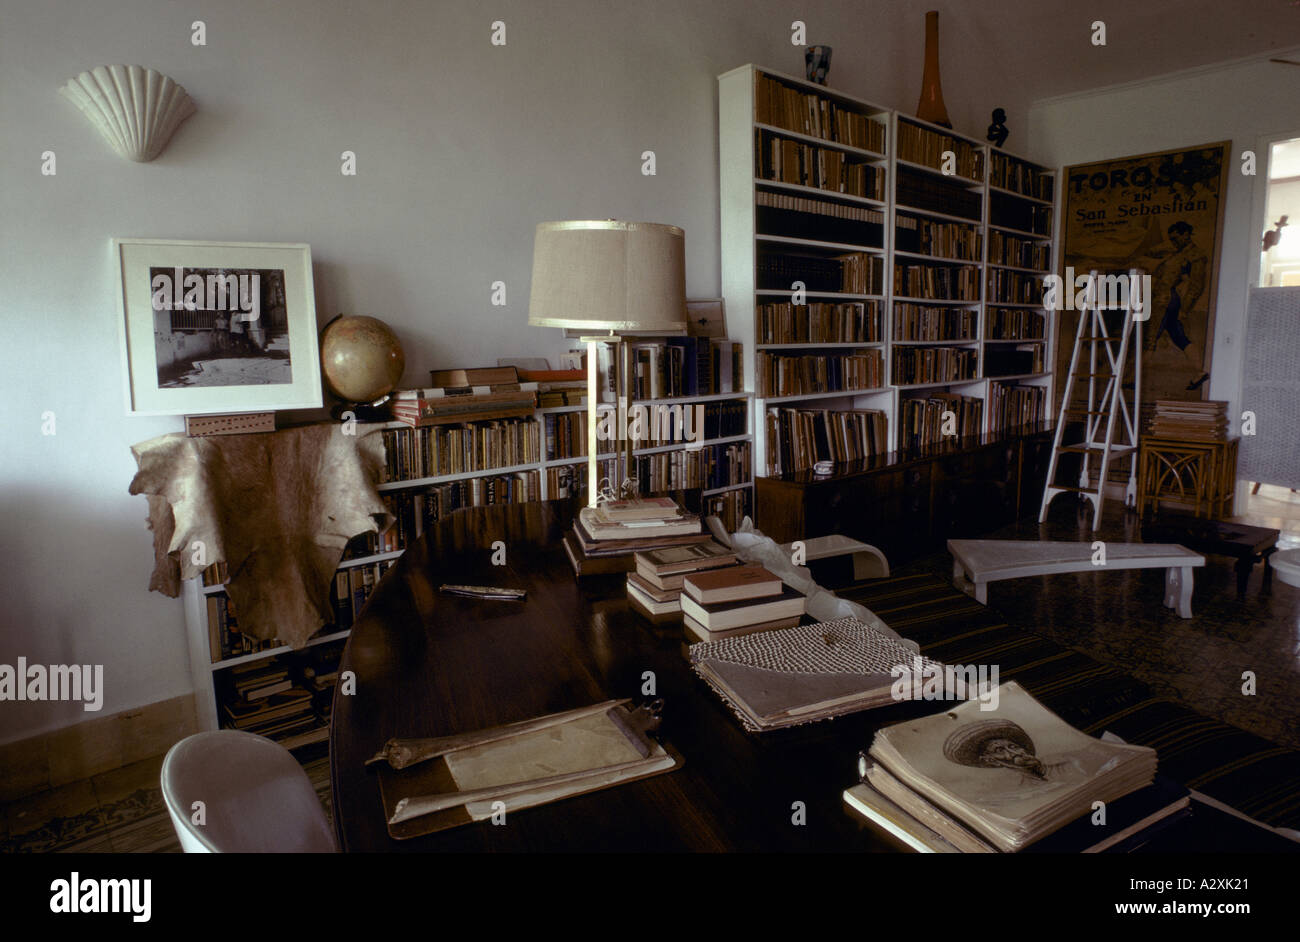 Ernest Hemingway's study in his home in Cuba Stock Photo